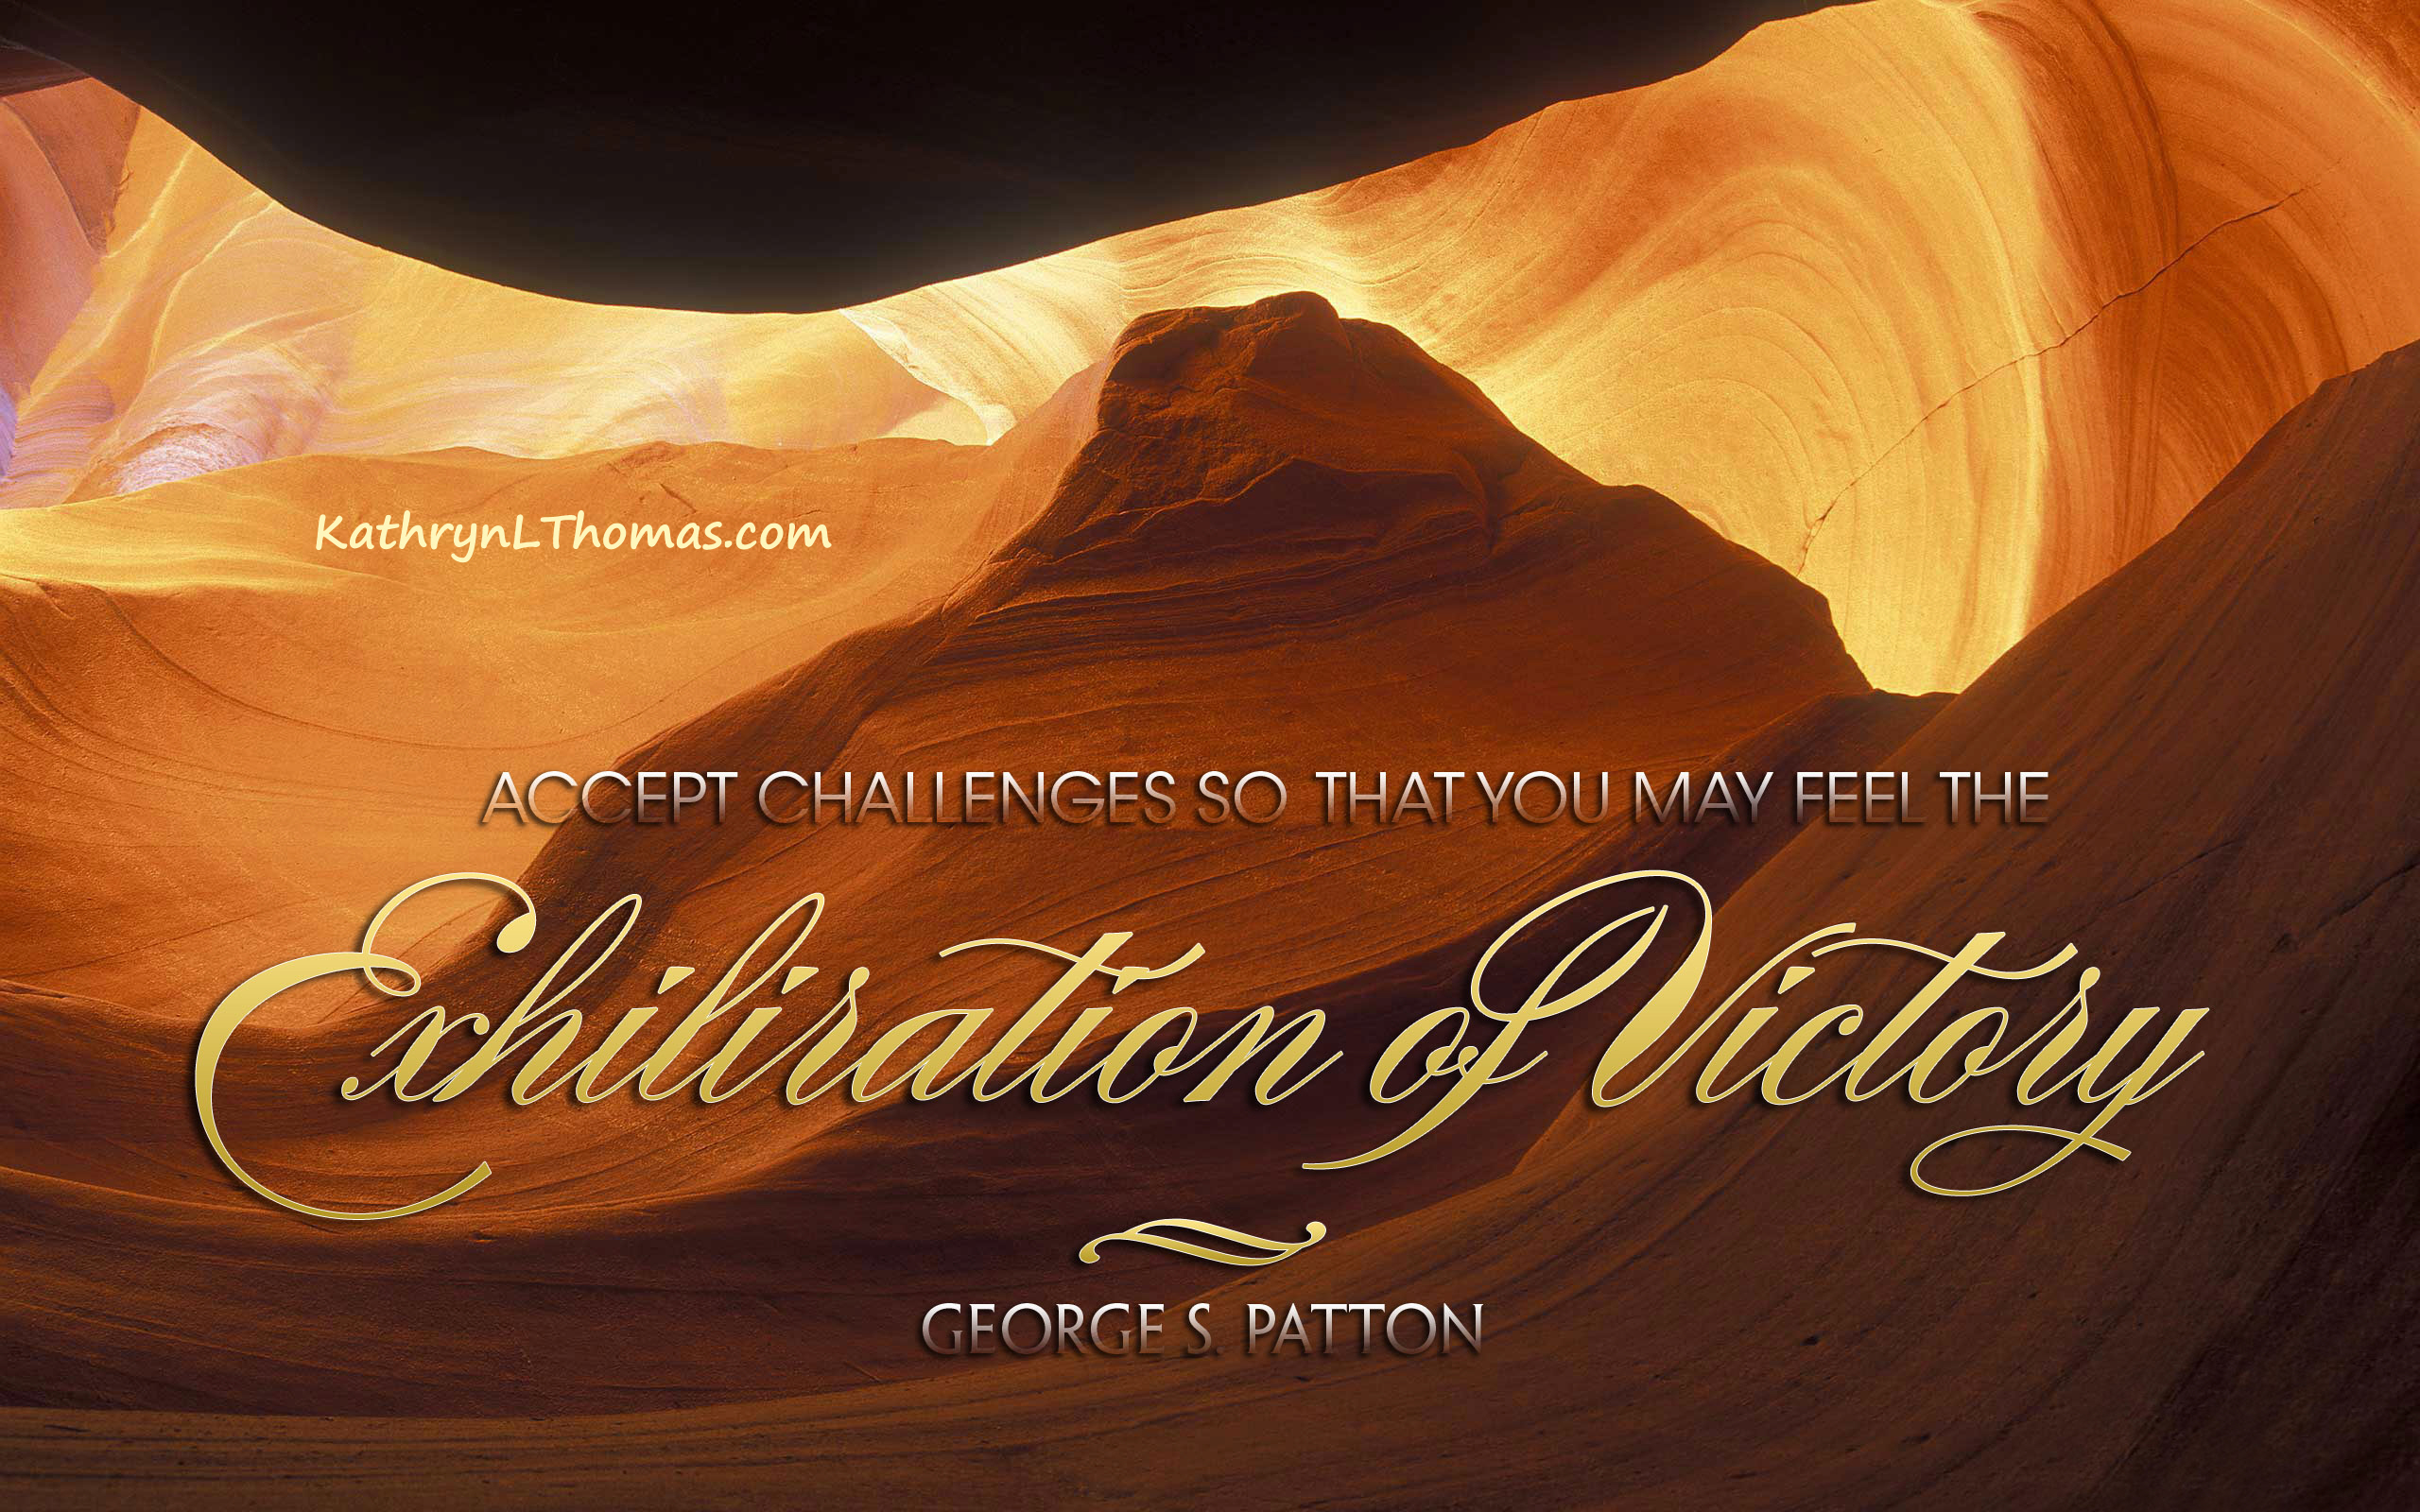 George S. Patton quote about challenges